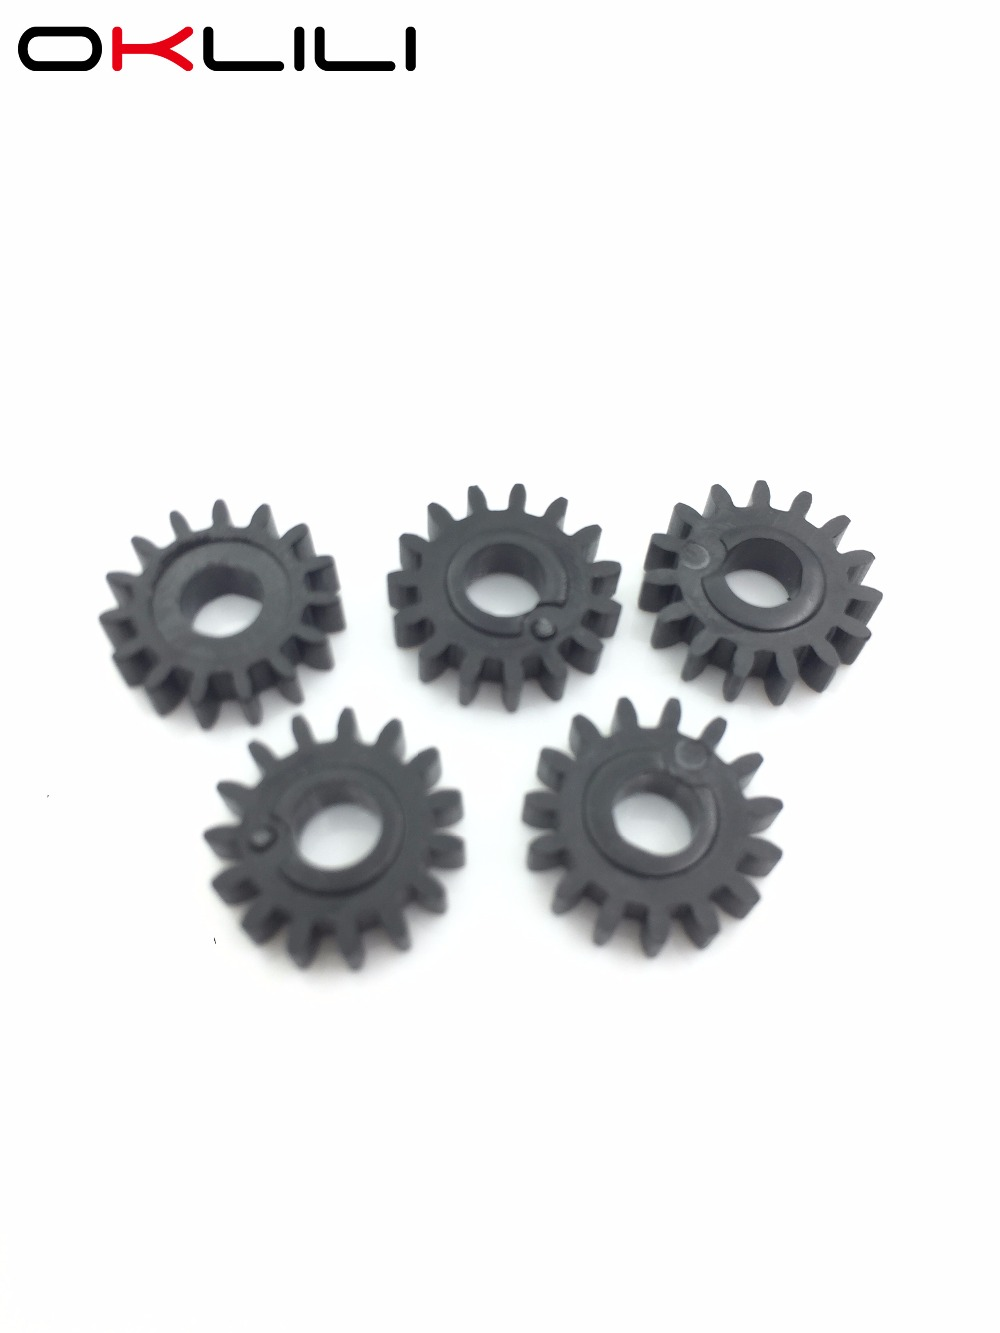 5PC Clutch Gear 15T Carriage lock for HP C3150 C3180 C4140 C4150 C4280 D5060 D5065 D5069 J3680 6310 L7680 J4500 J4550 J4580 23555PC Clutch Gear 15T Carriage lock for HP C3150 C3180 C4140 C4150 C4280 D5060 D5065 D5069 J3680 6310 L7680 J4500 J4550 J4580 2355